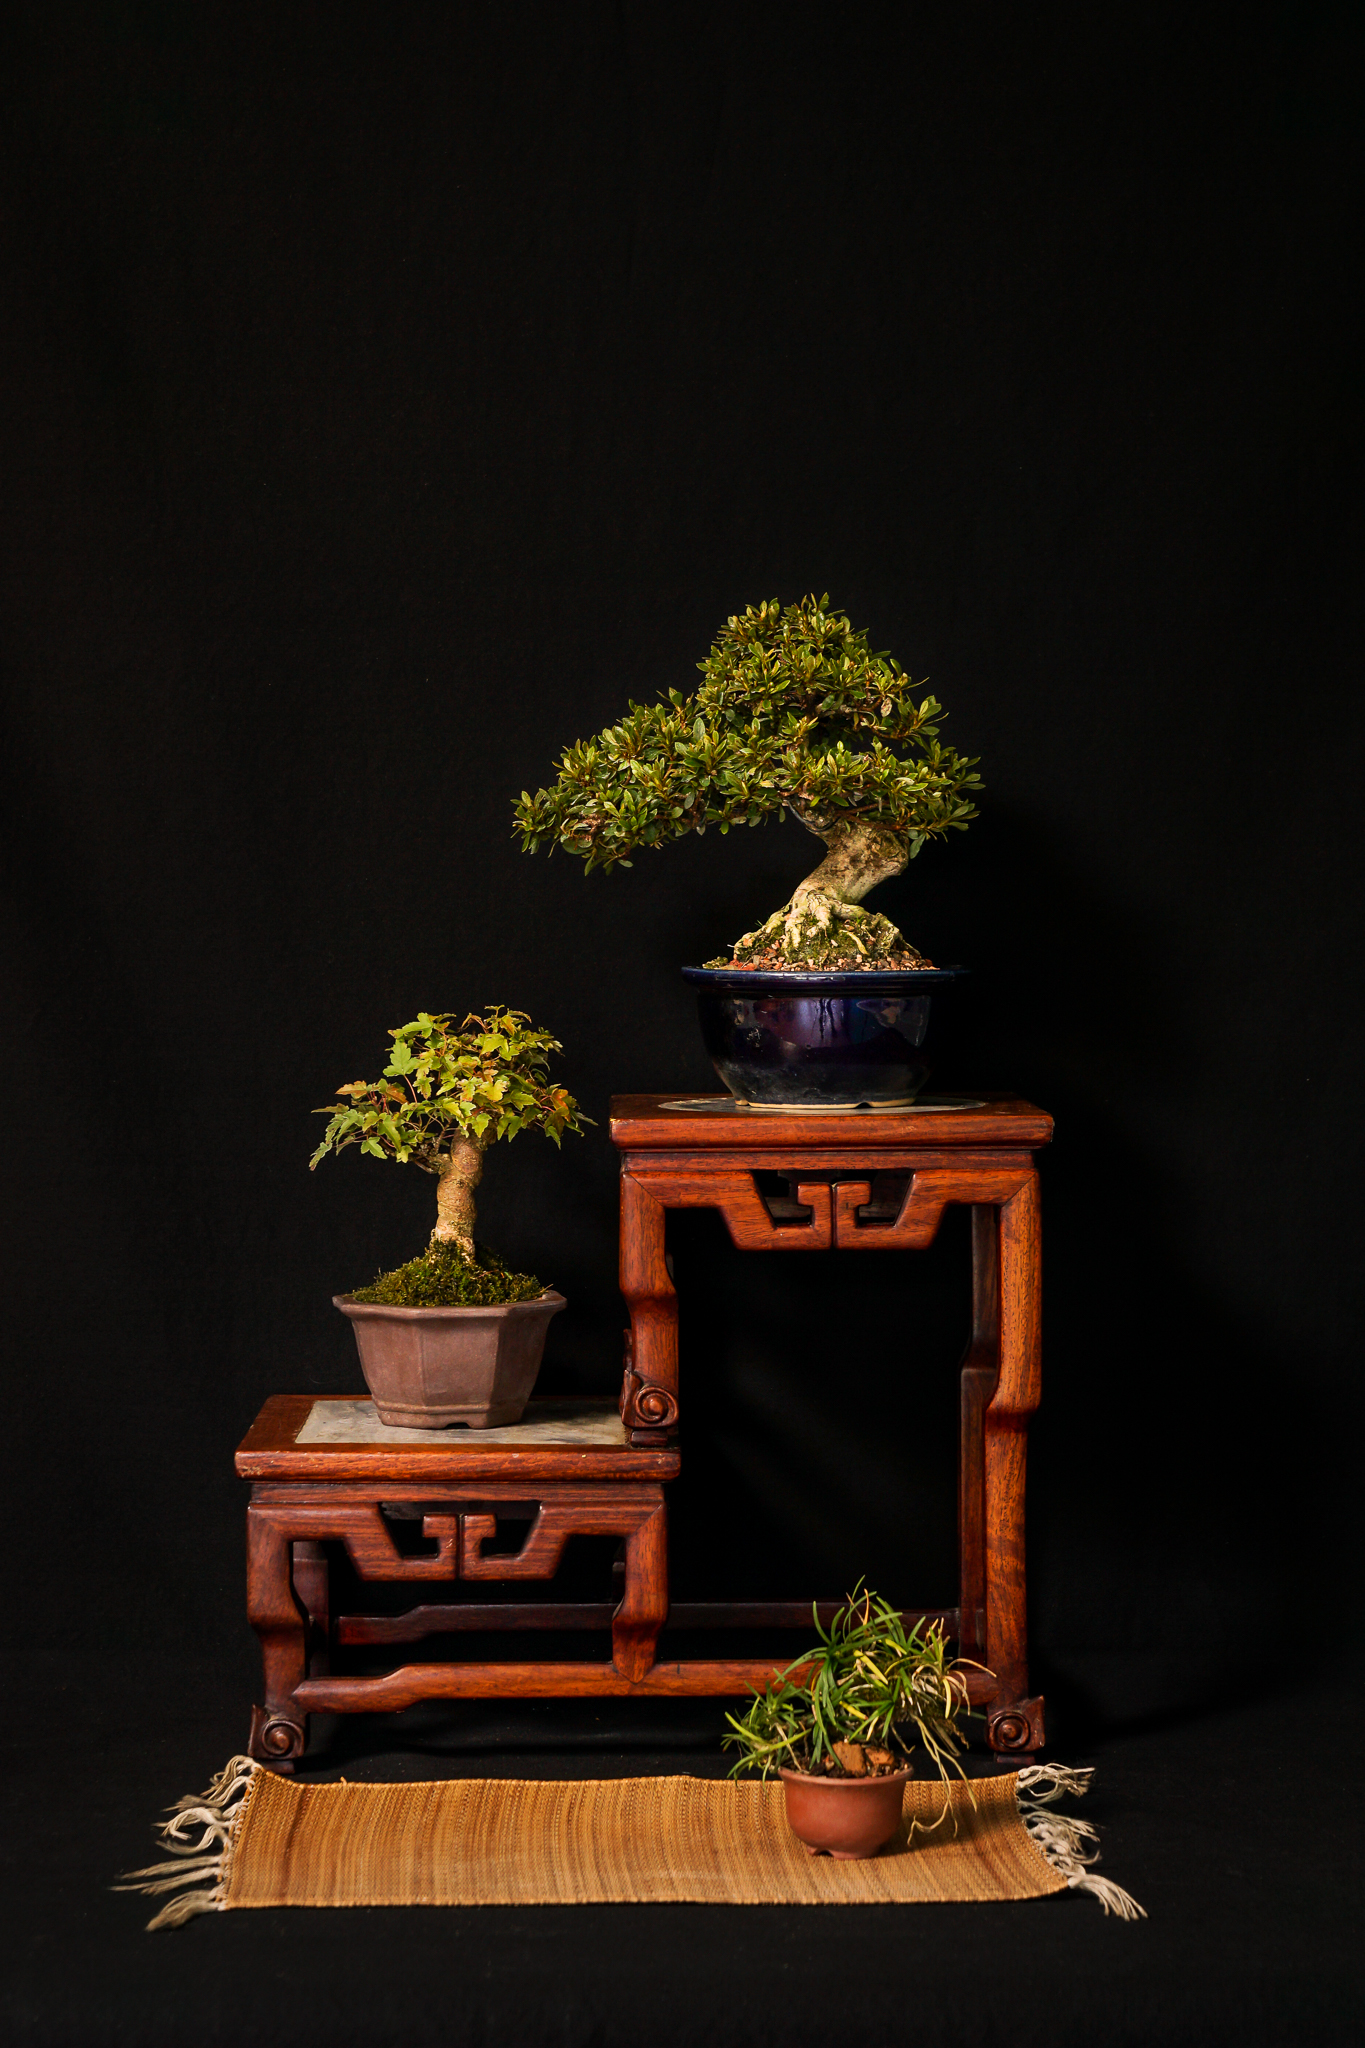 Shohin Display feat. Azalea and Trident Maple